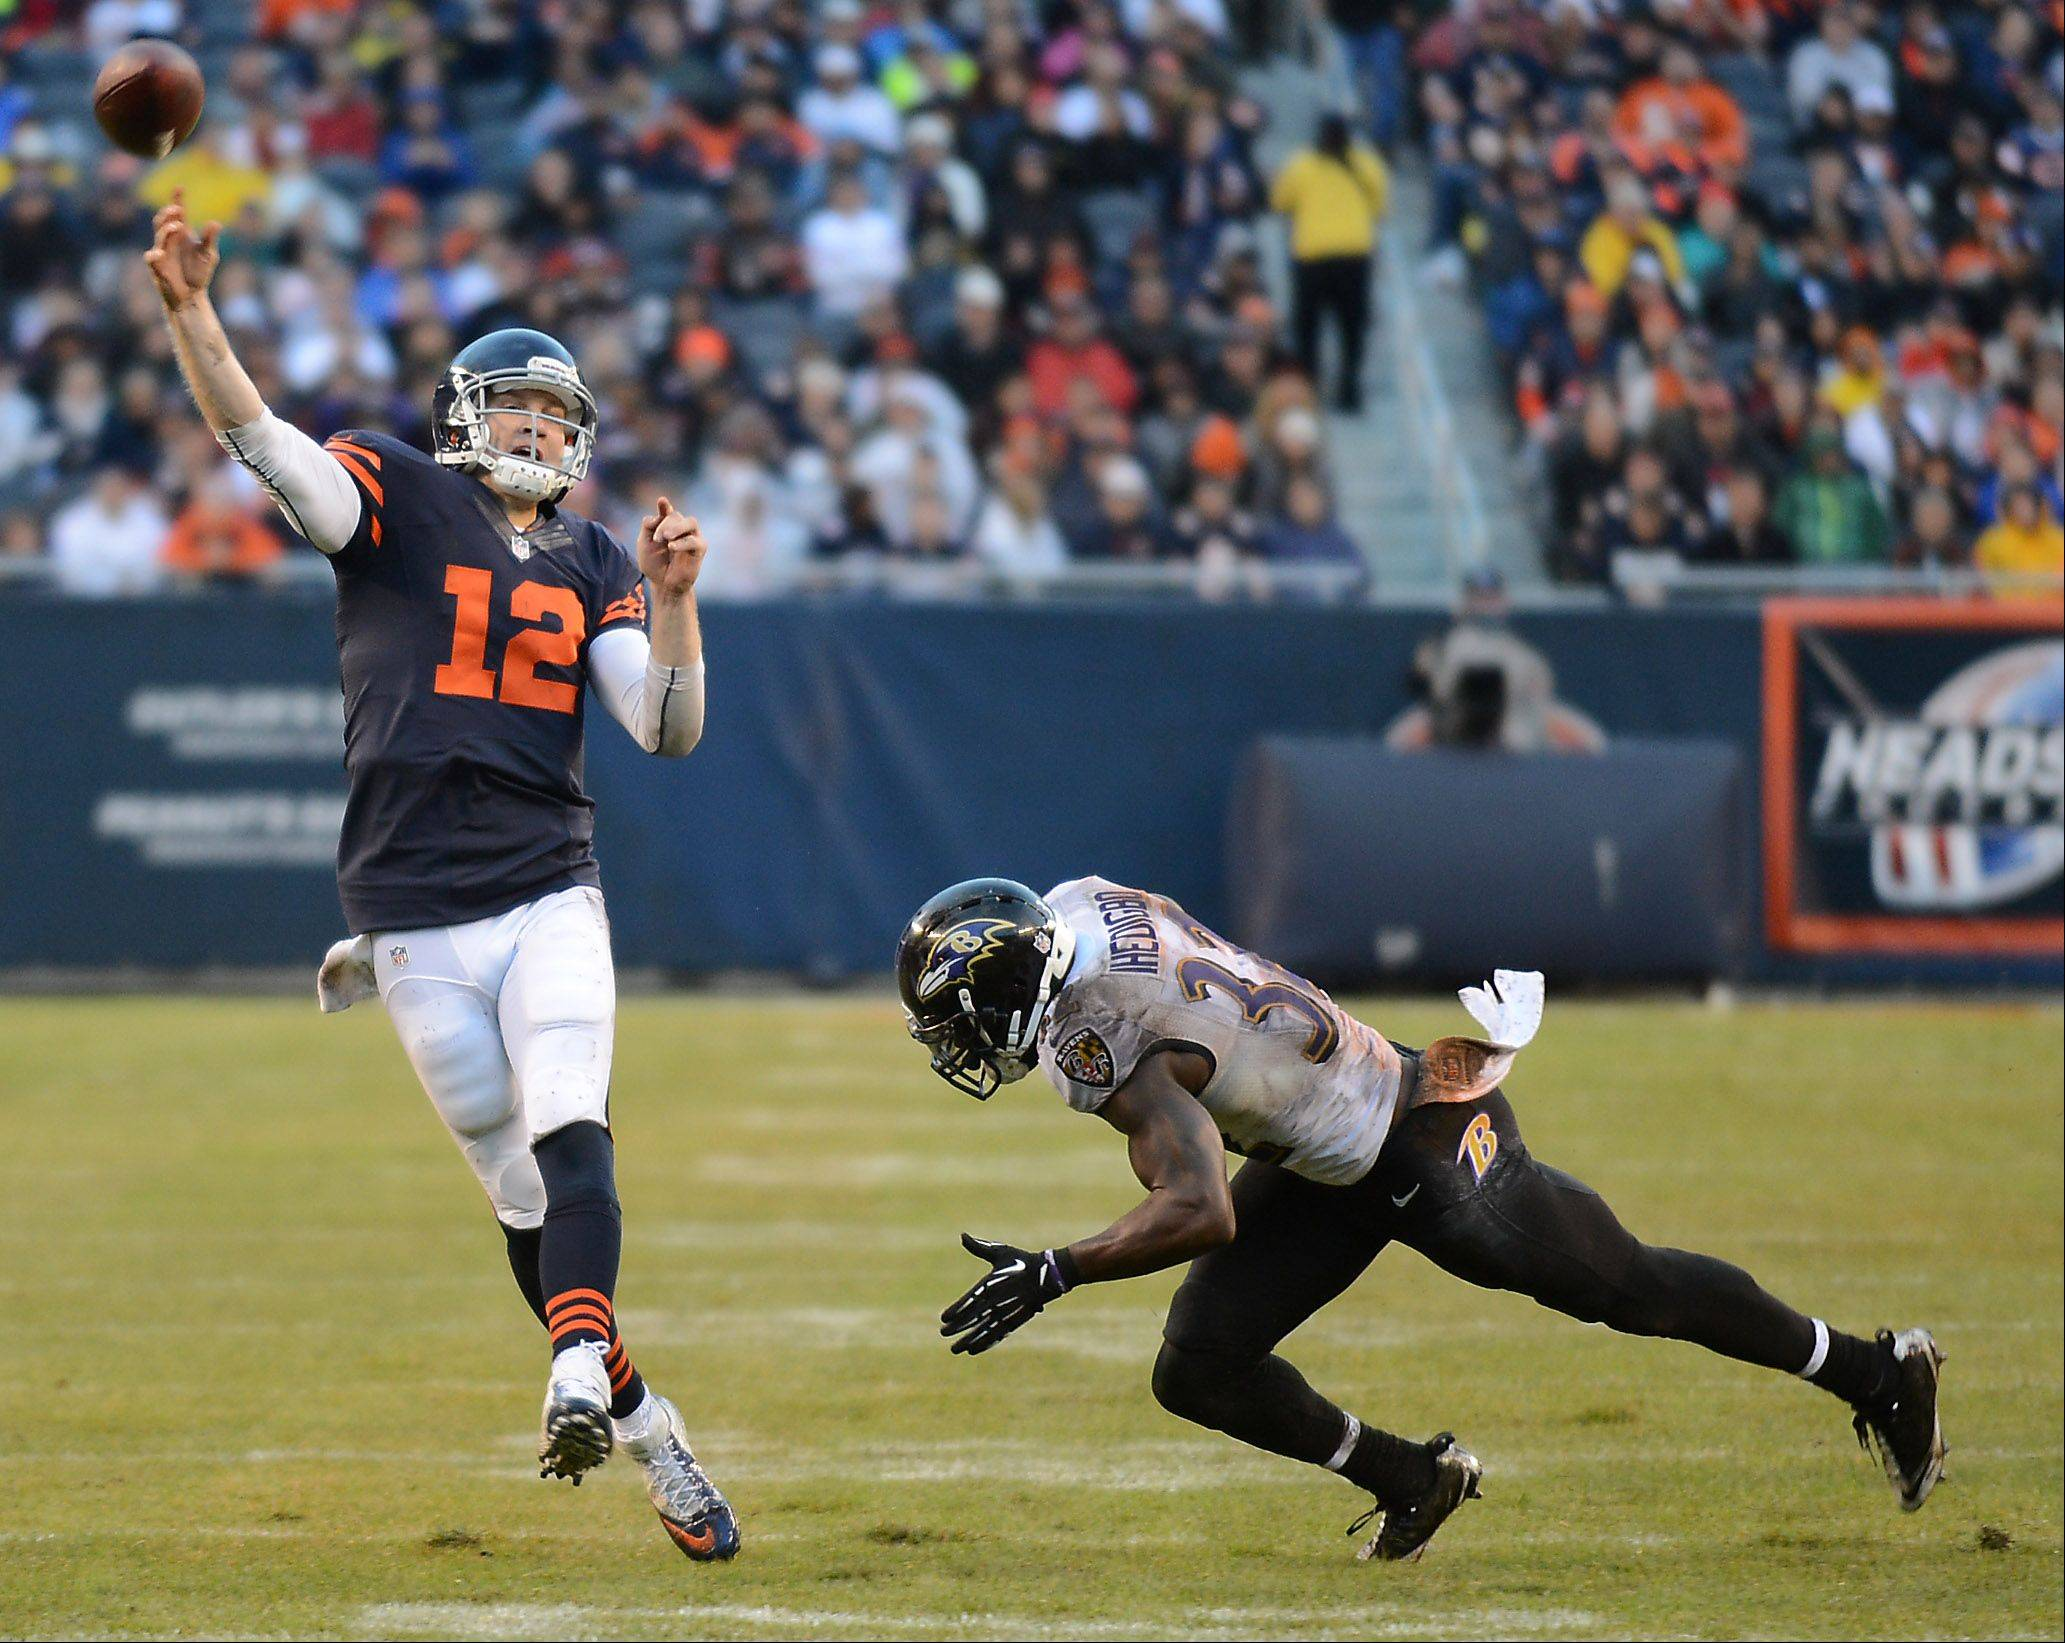 Chicago Bears quarterback Josh McCown (12) rolls out and fires a pass downfield during Sunday's game in Chicago.